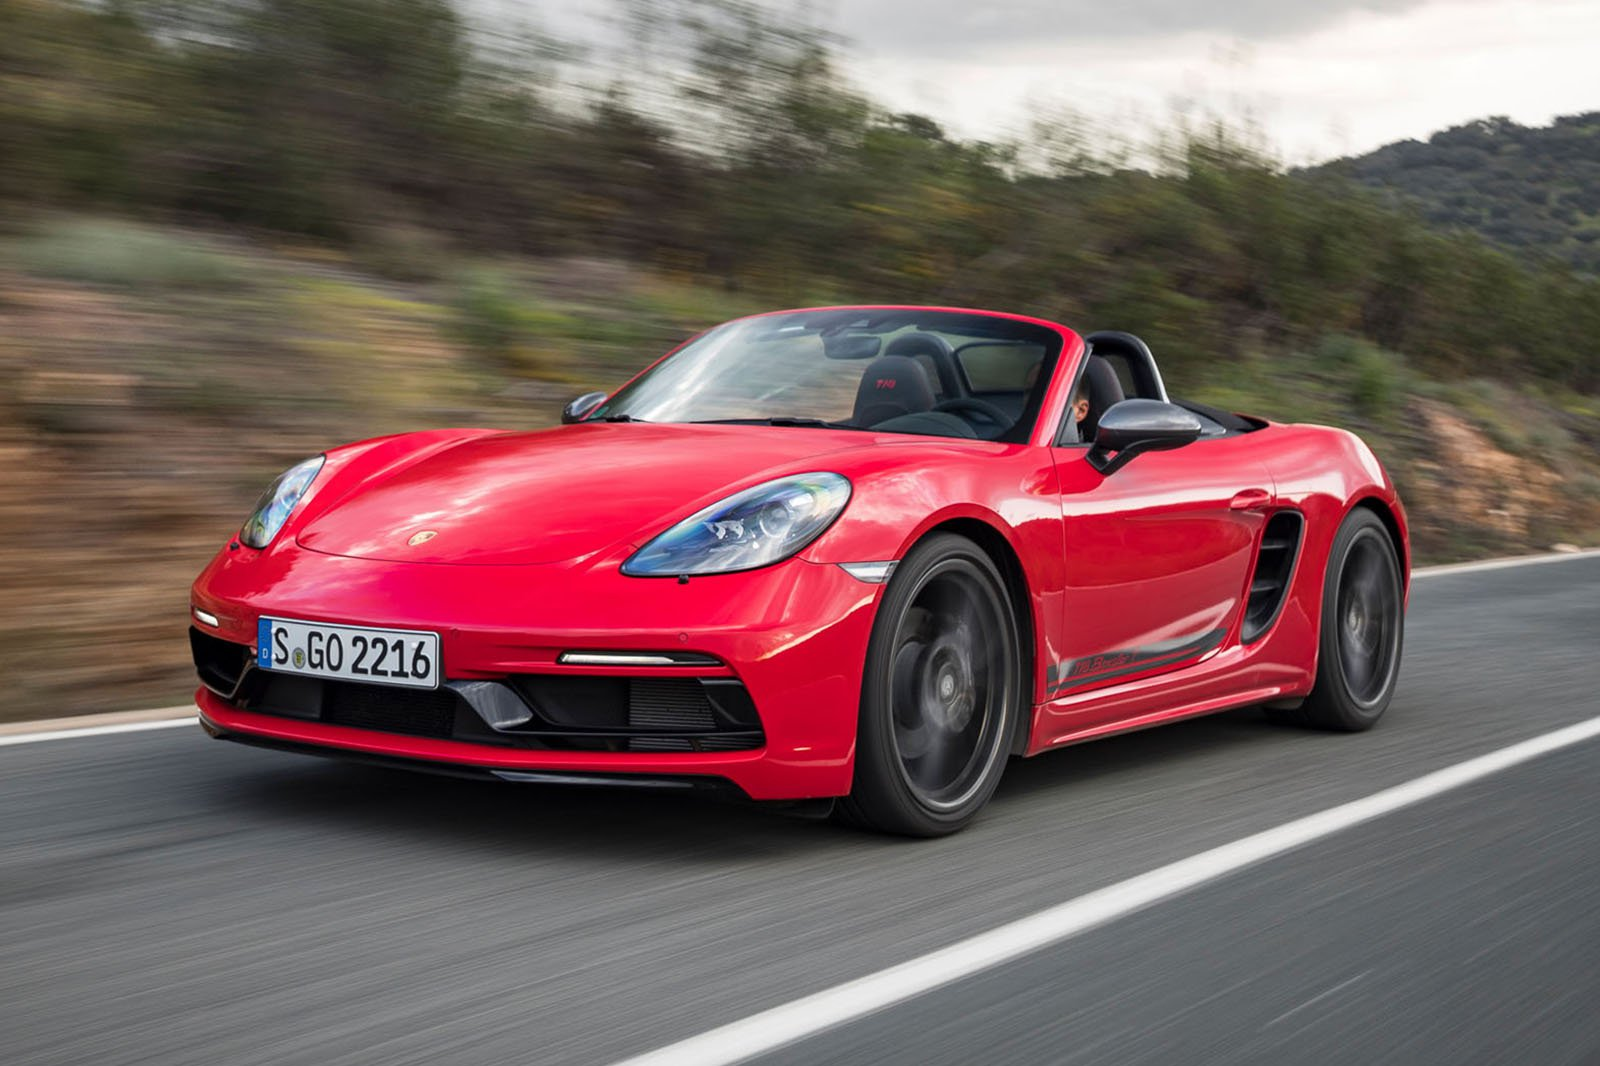 2019 Porsche 718 Boxster T review: price, specs and ...